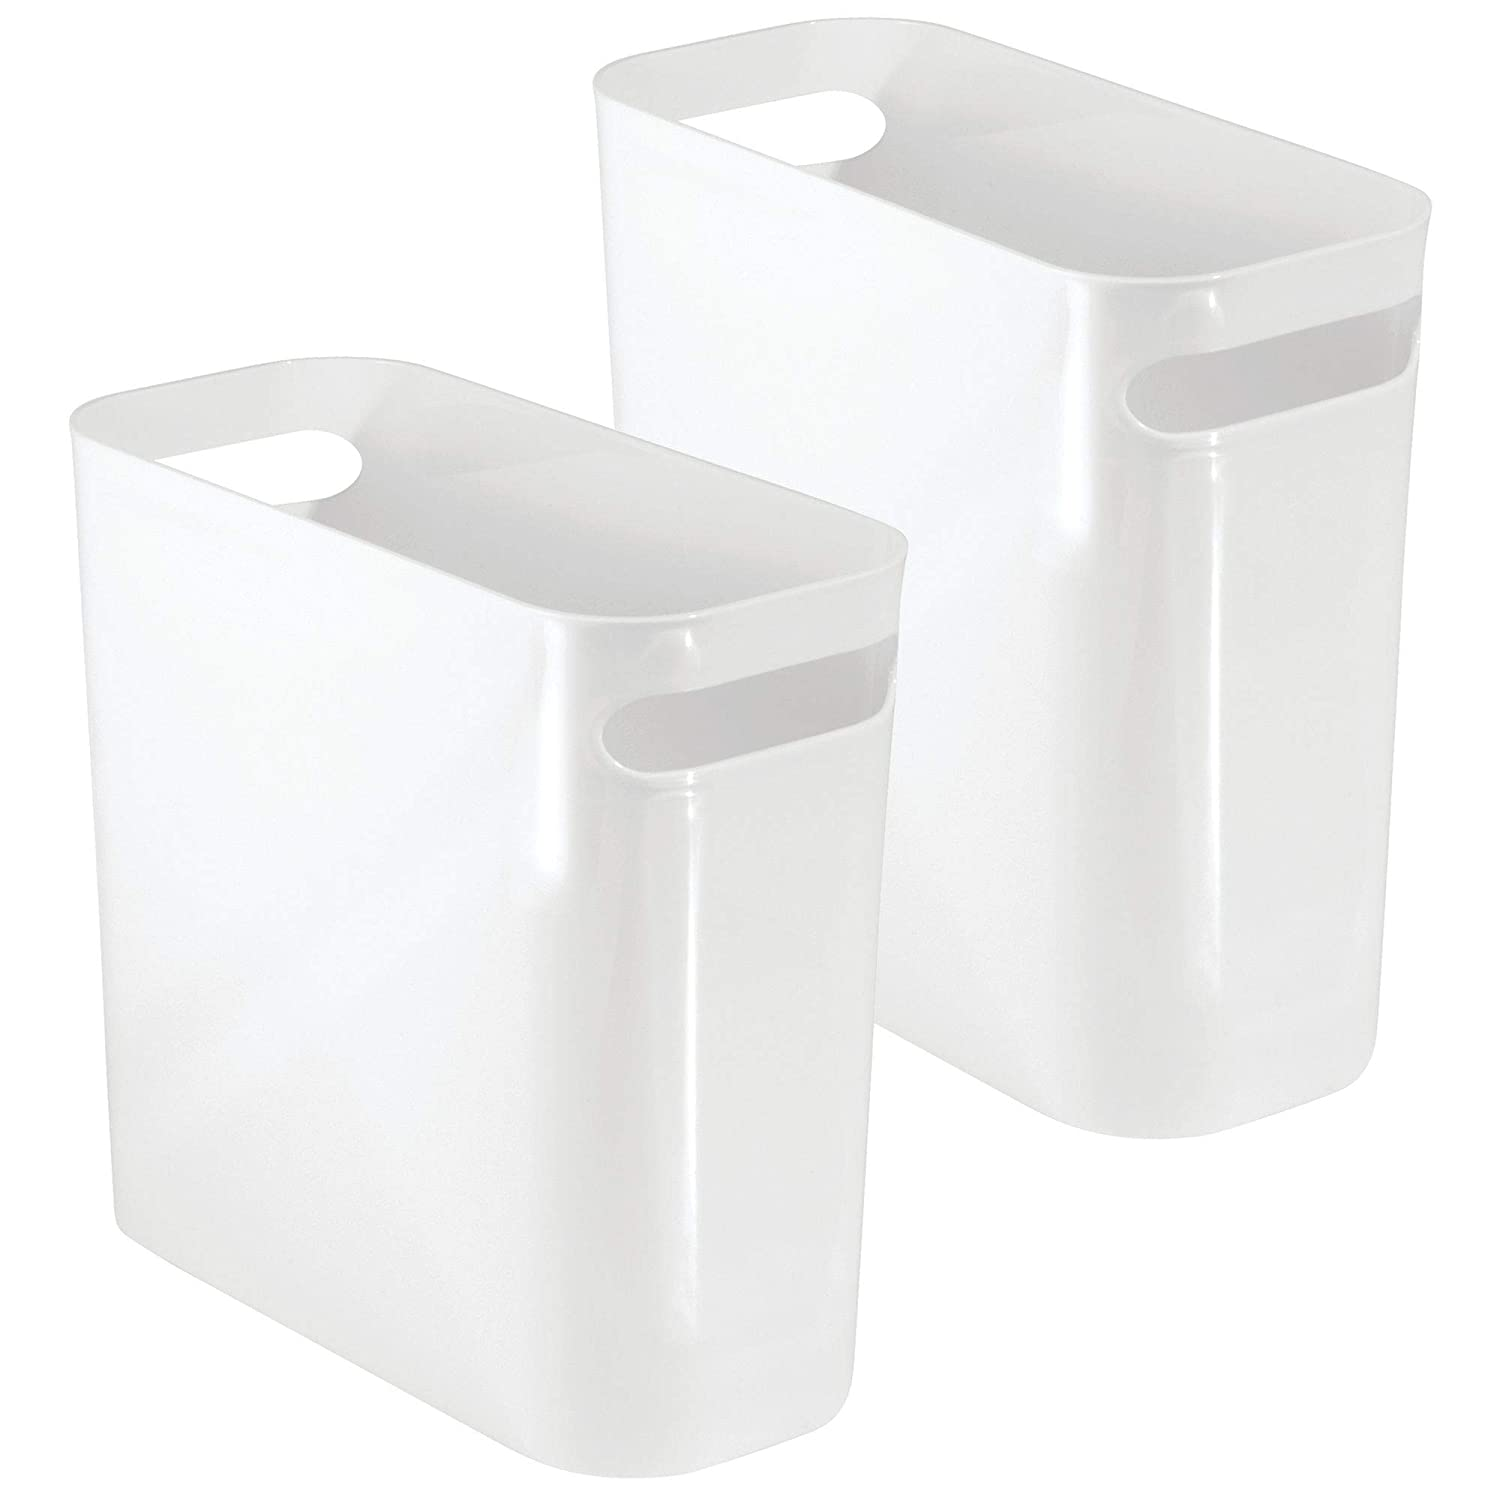 "mDesign Slim Plastic Rectangular Small Trash Can Wastebasket, Garbage Container Bin with Handles for Bathroom, Kitchen, Home Office, Dorm, Kids Room - 10"" High, Shatter-Resistant - 2 Pack - White"